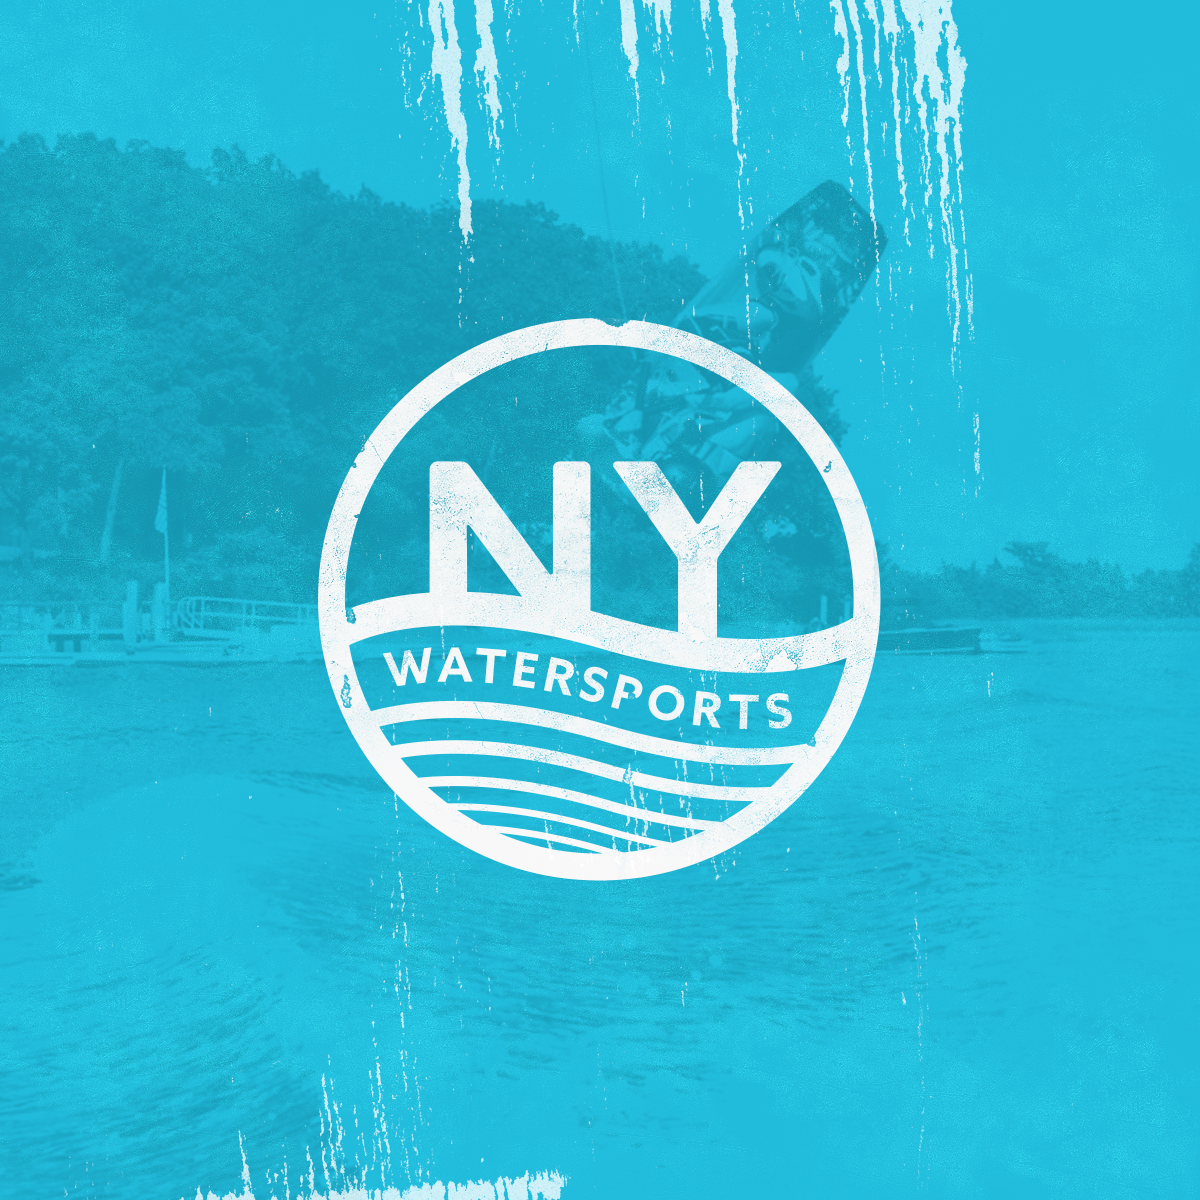 Ny watersports logo business cards on behance logo and business cards i created for ny watersports a long island ny based company teaches people how to wakeboard and waterski reheart Image collections